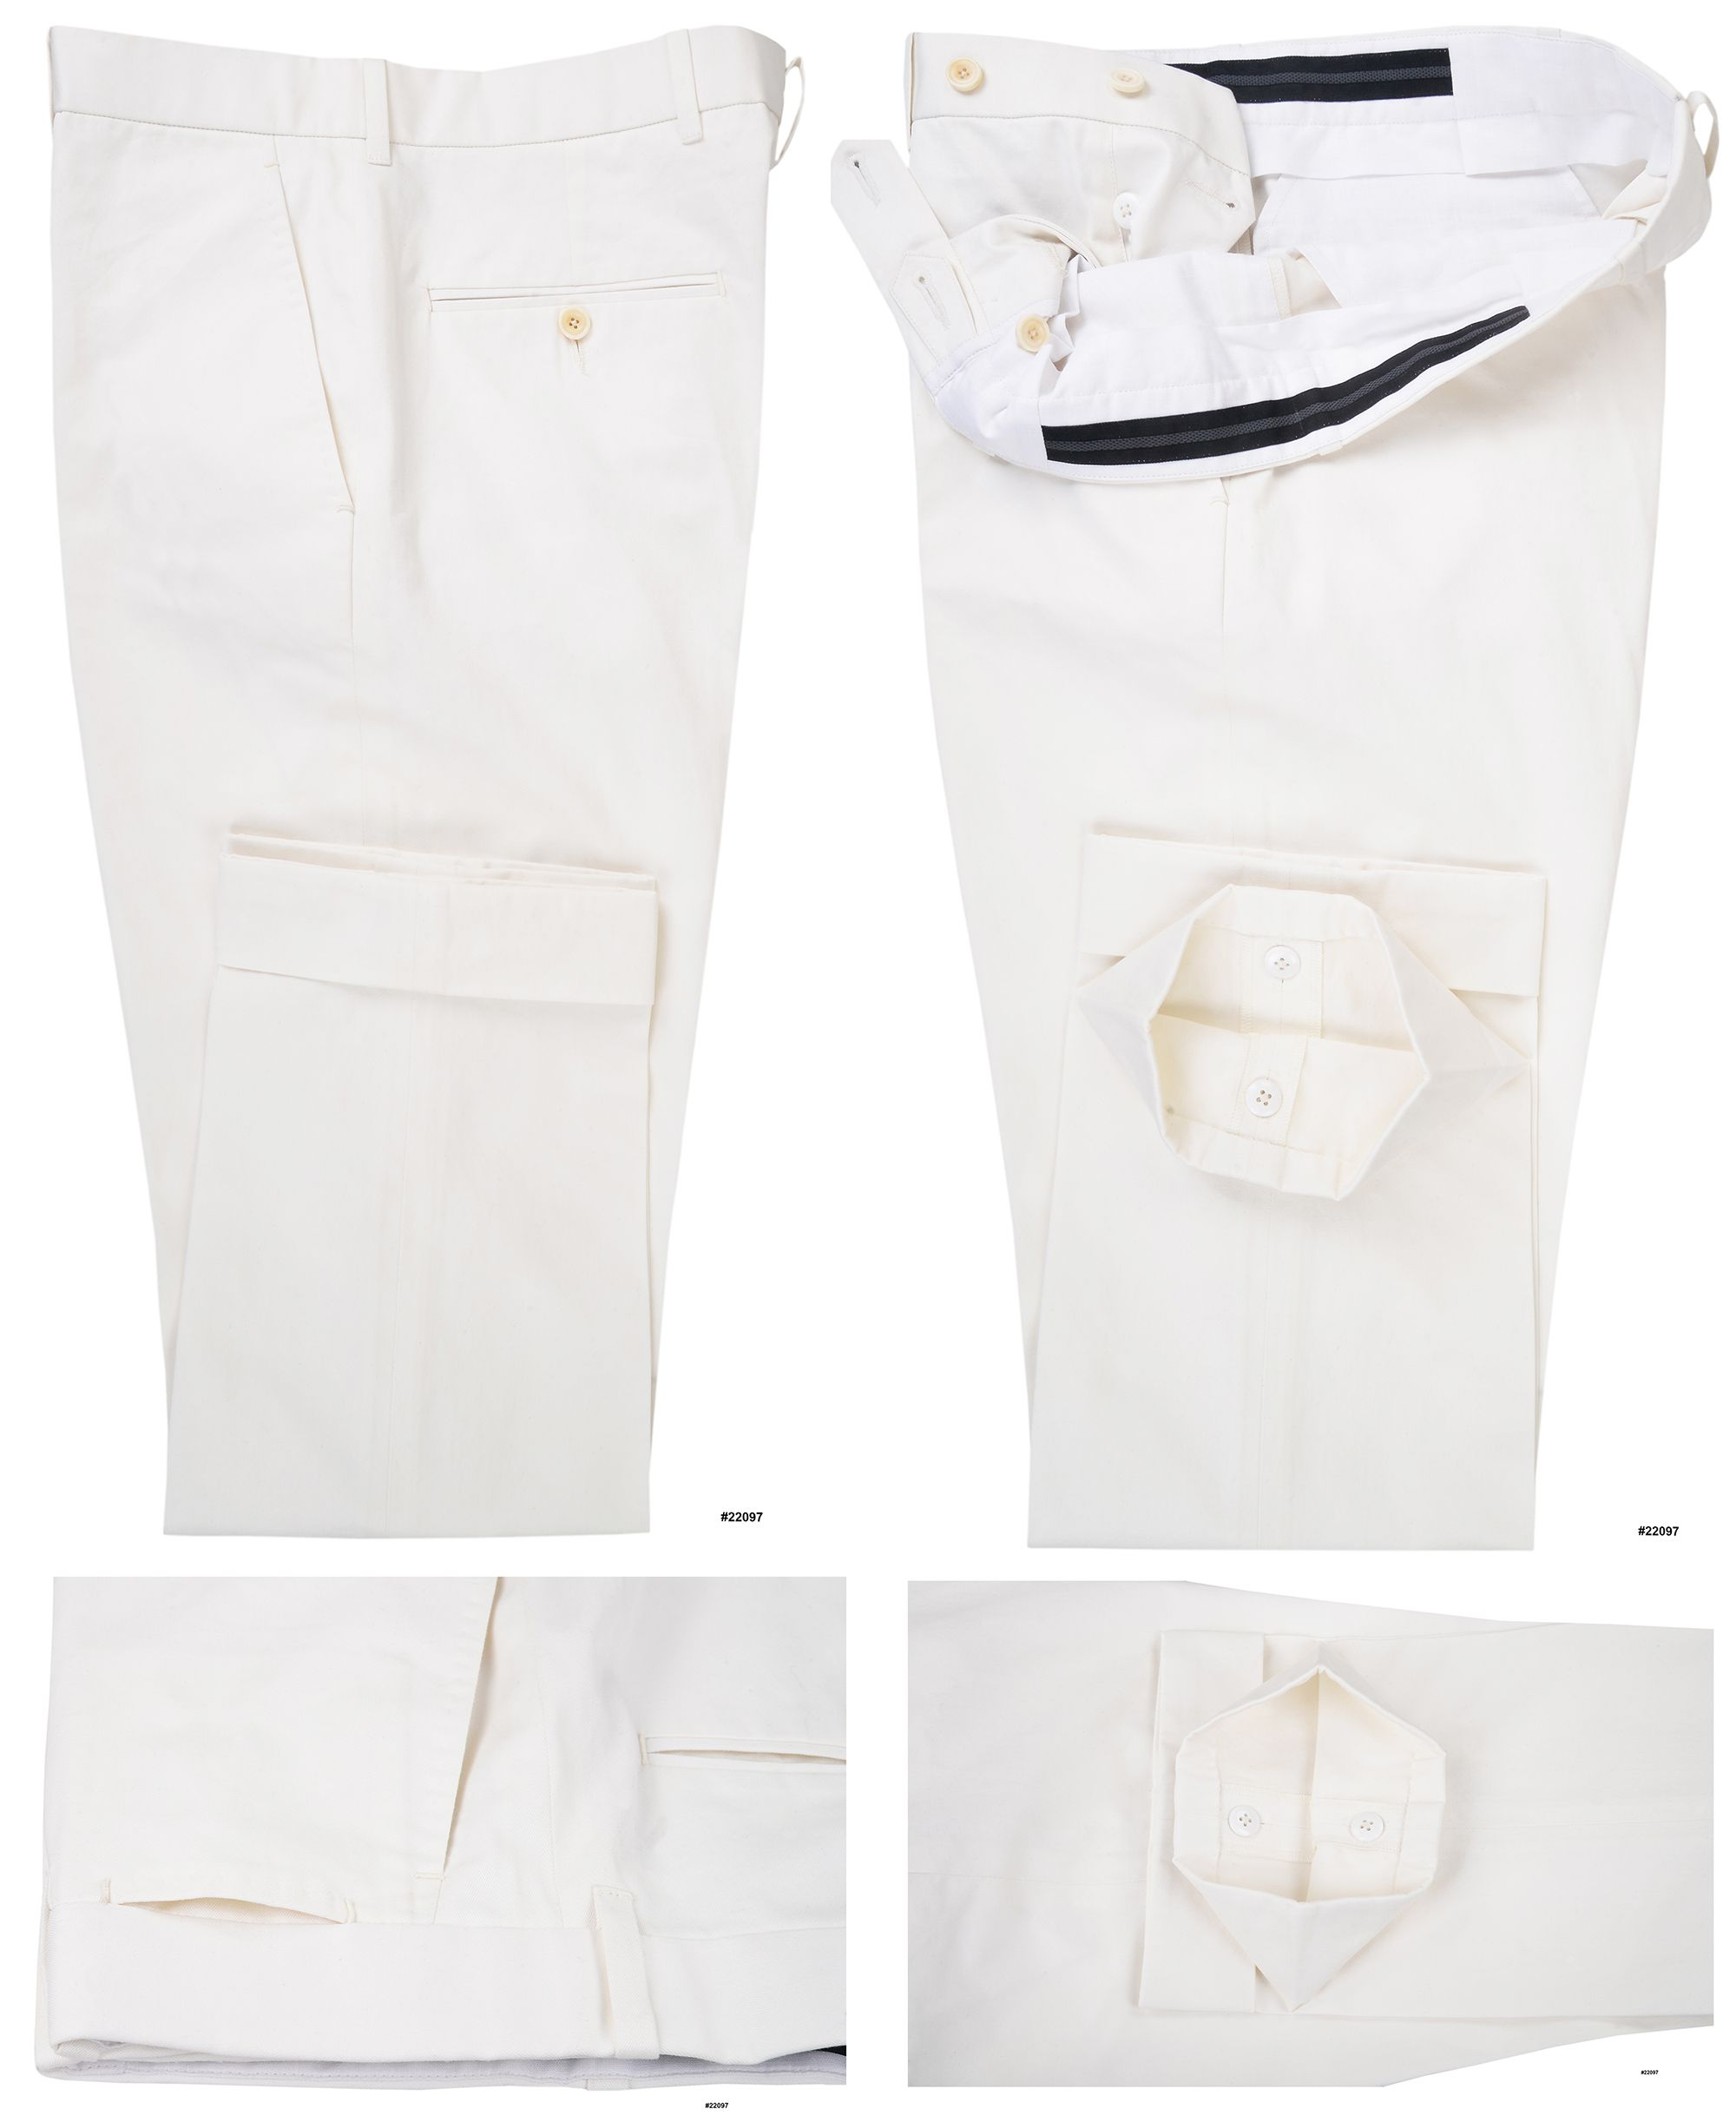 9a58cb3807 Luxire Fit-Test Trial Pants 100% cotton off-white twill chino pants.  Features: Standard extended closure with standard belt loop.